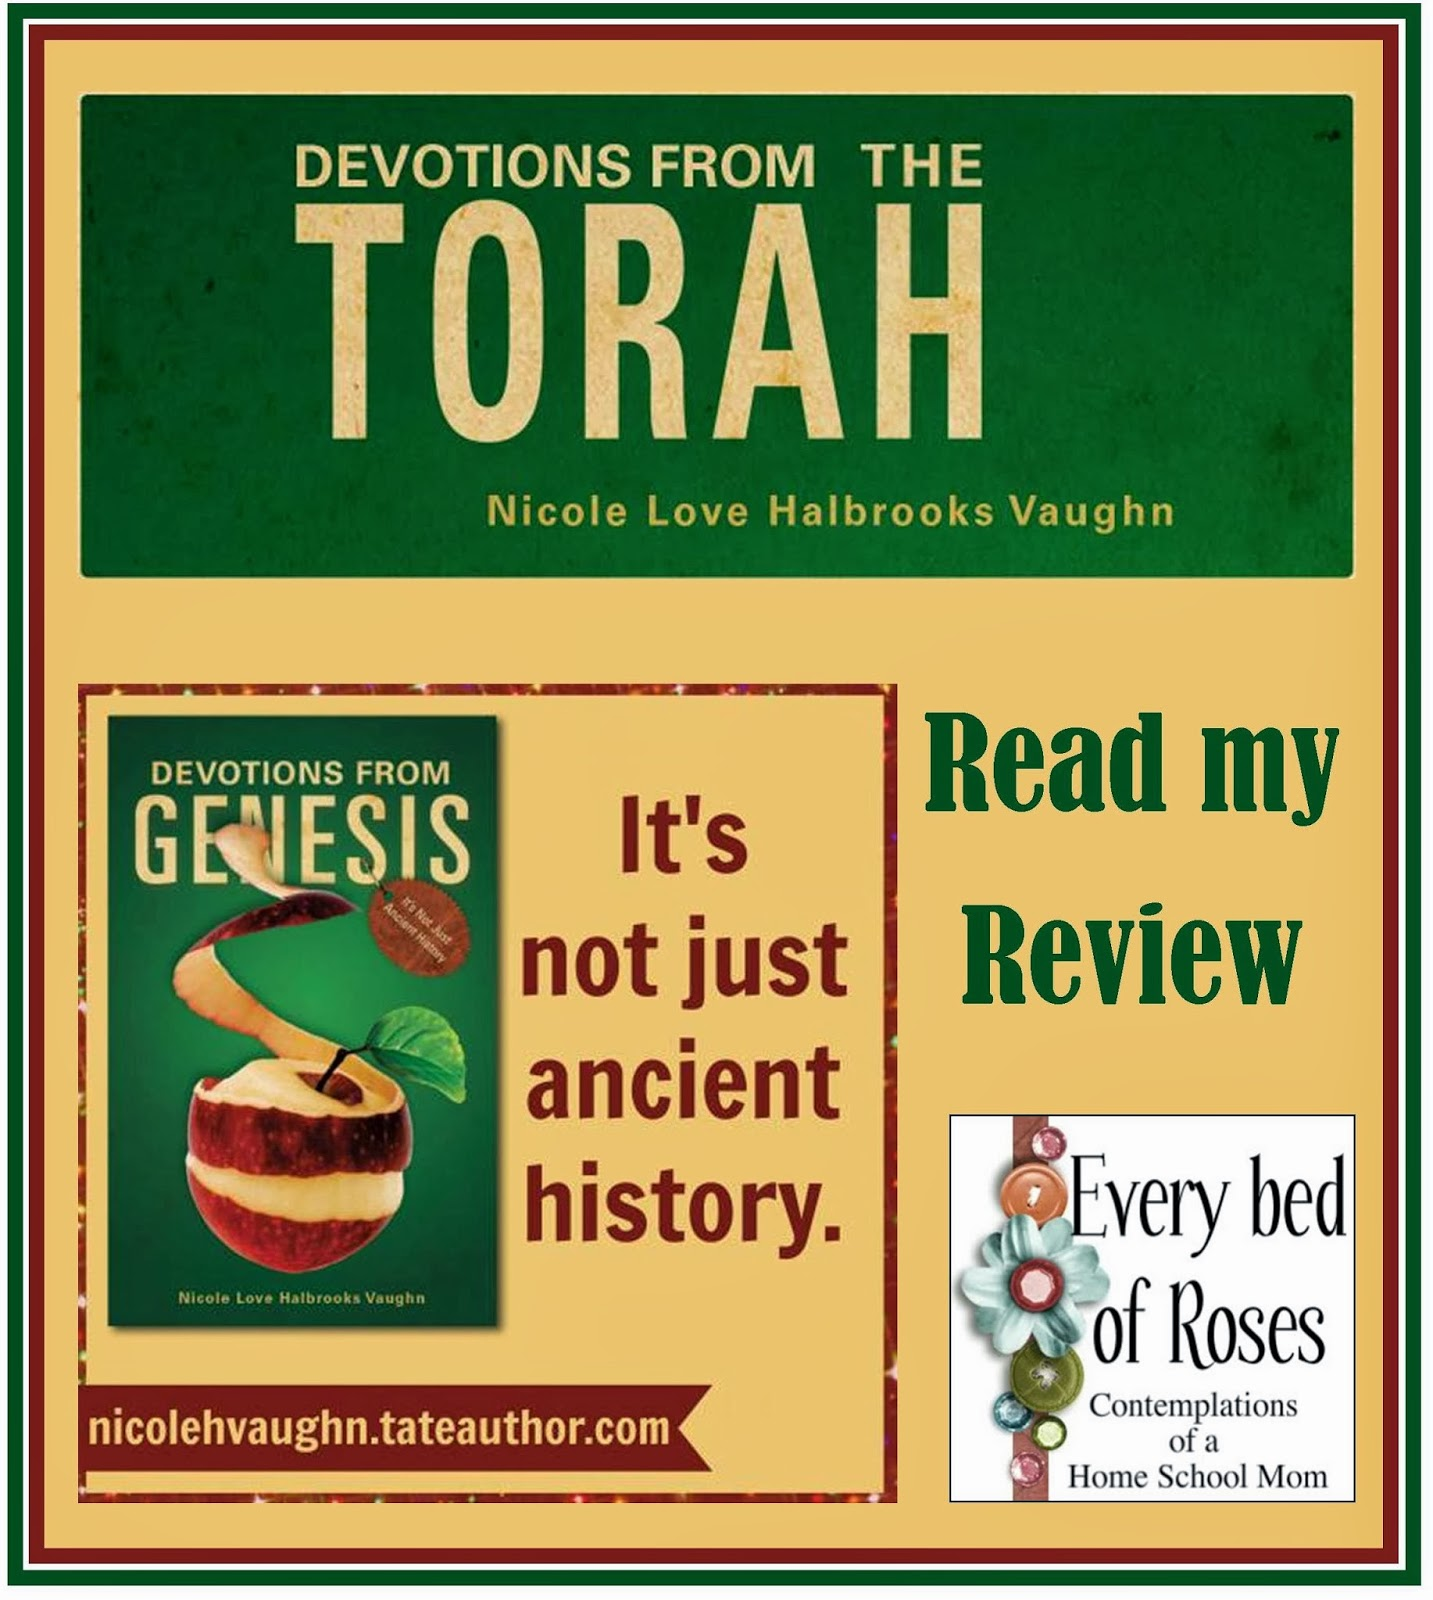 a review of the book of genesis The book of genesis - based on the first book of the bible, genesis is a sweeping  and poetic look at the beginning of man's relationship with.